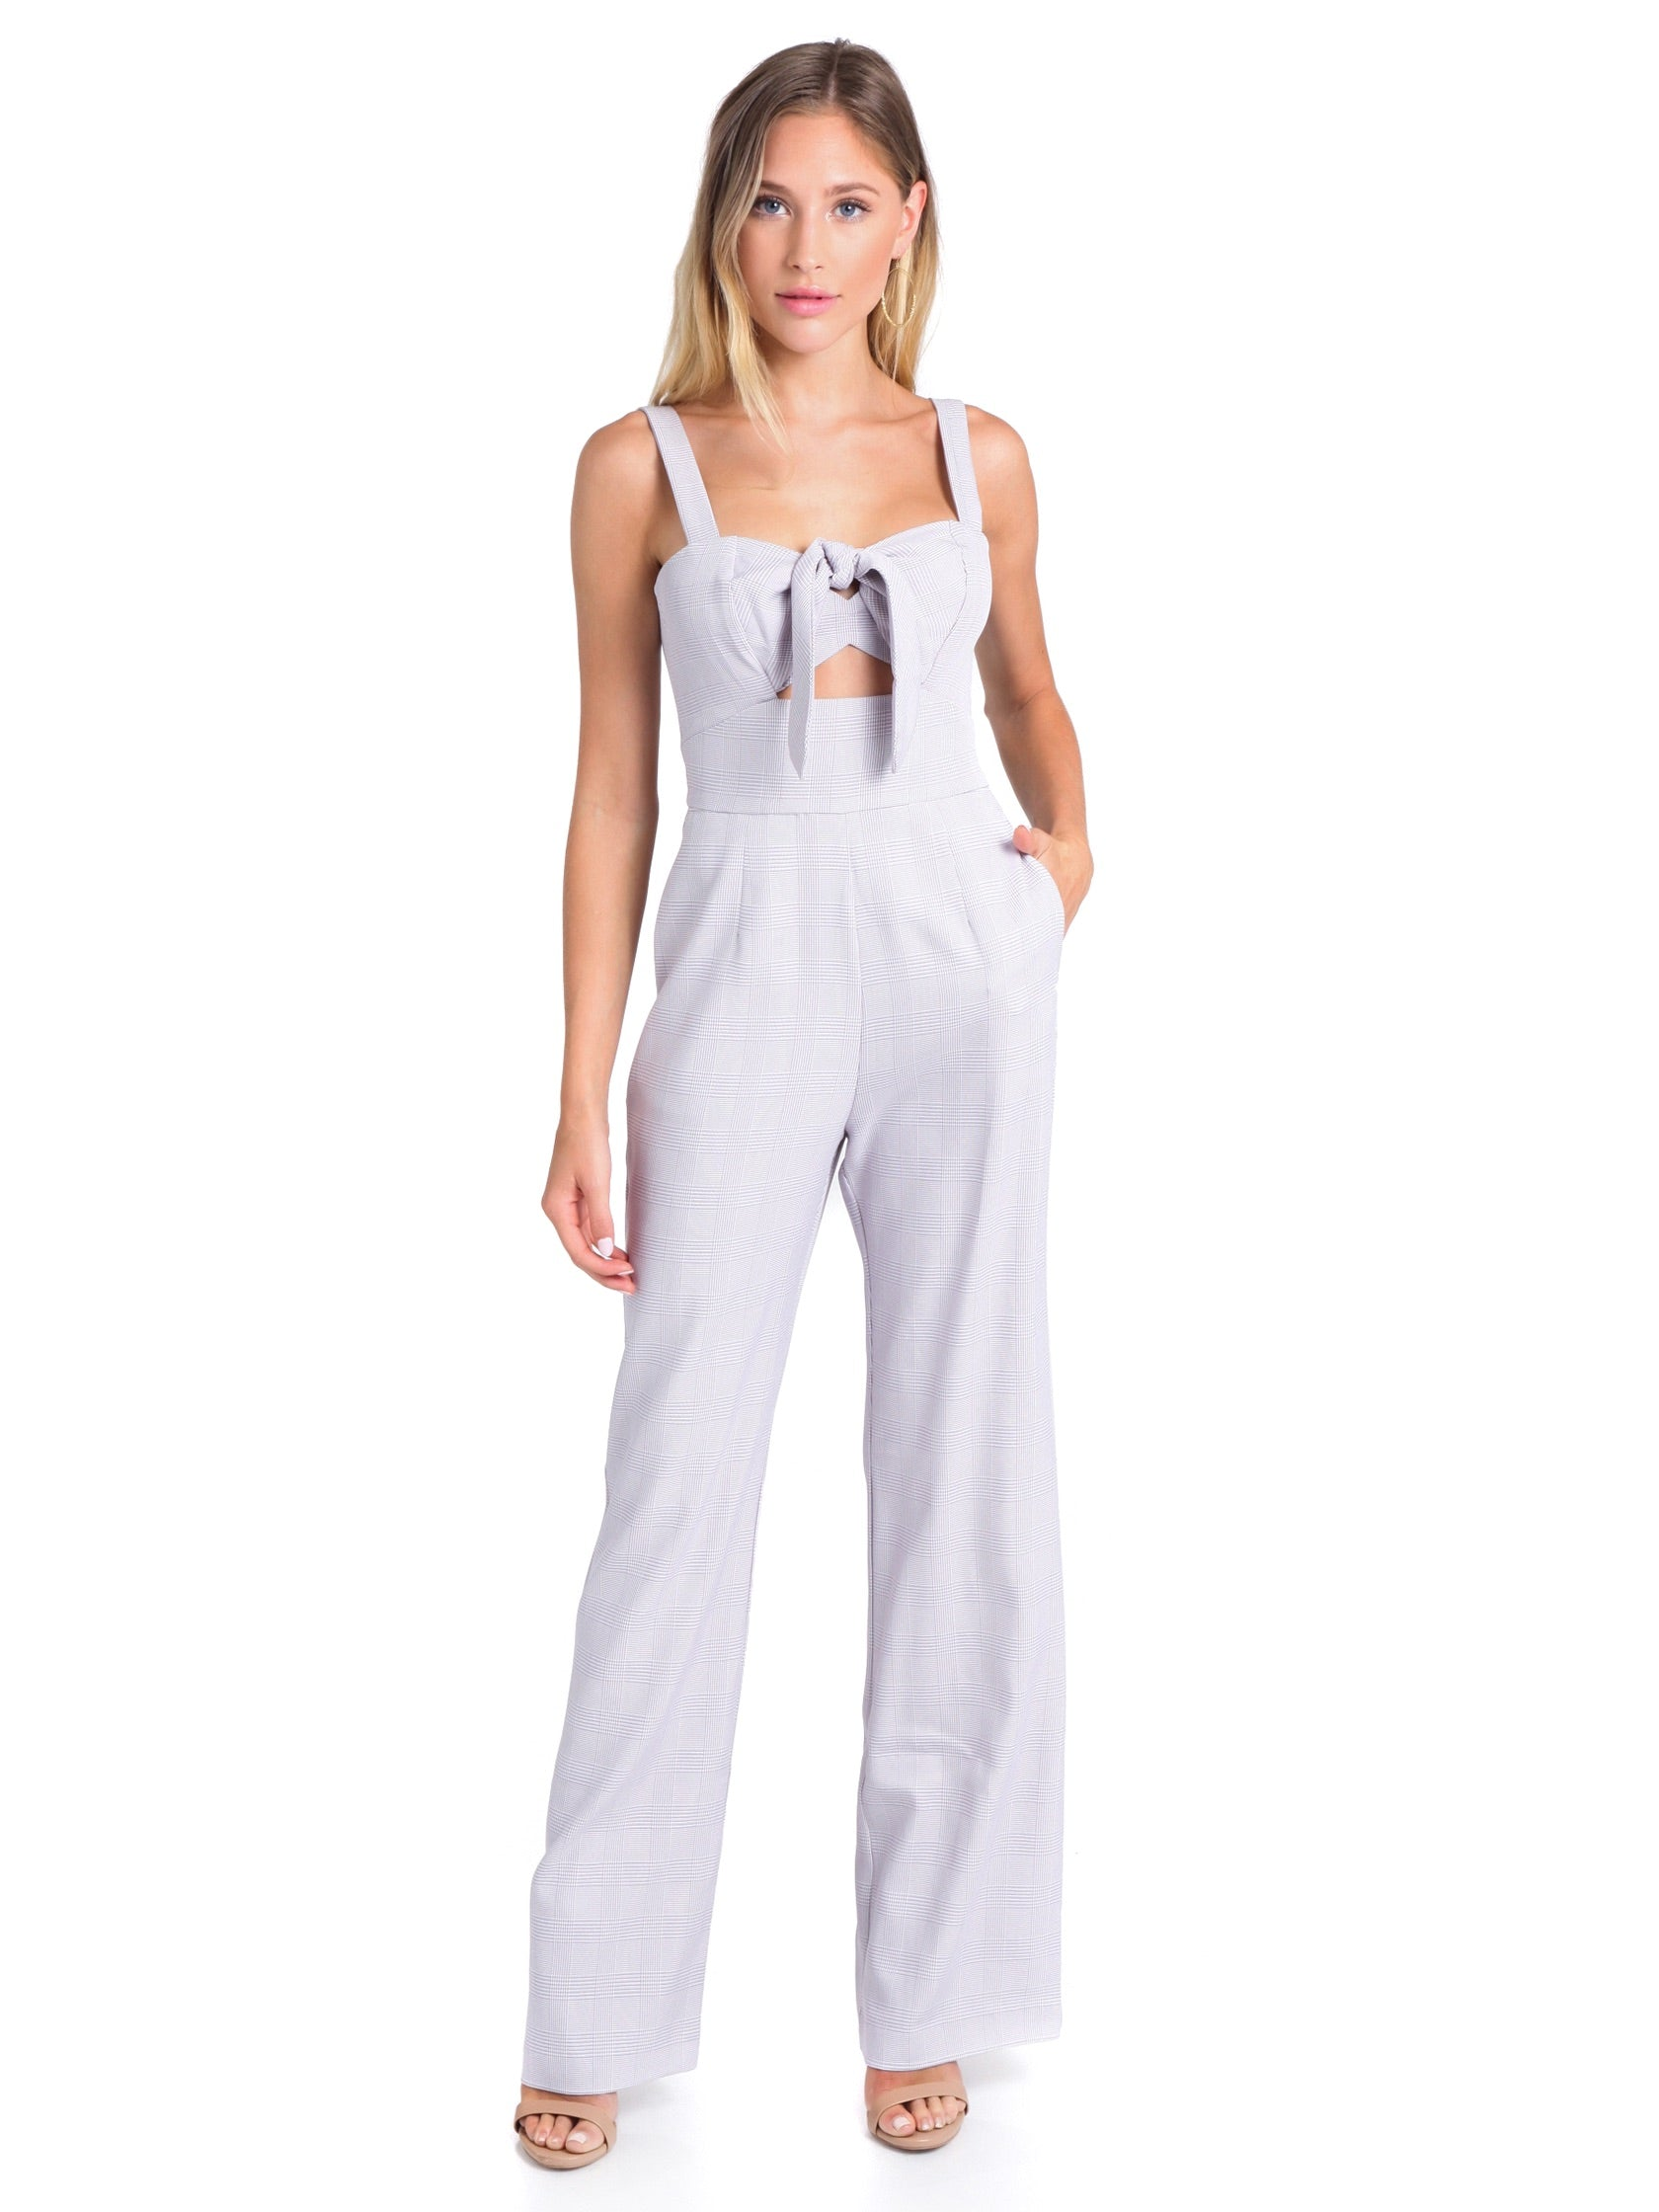 Girl outfit in a jumpsuit rental from WAYF called Roxy Glen Plaid Jumpsuit